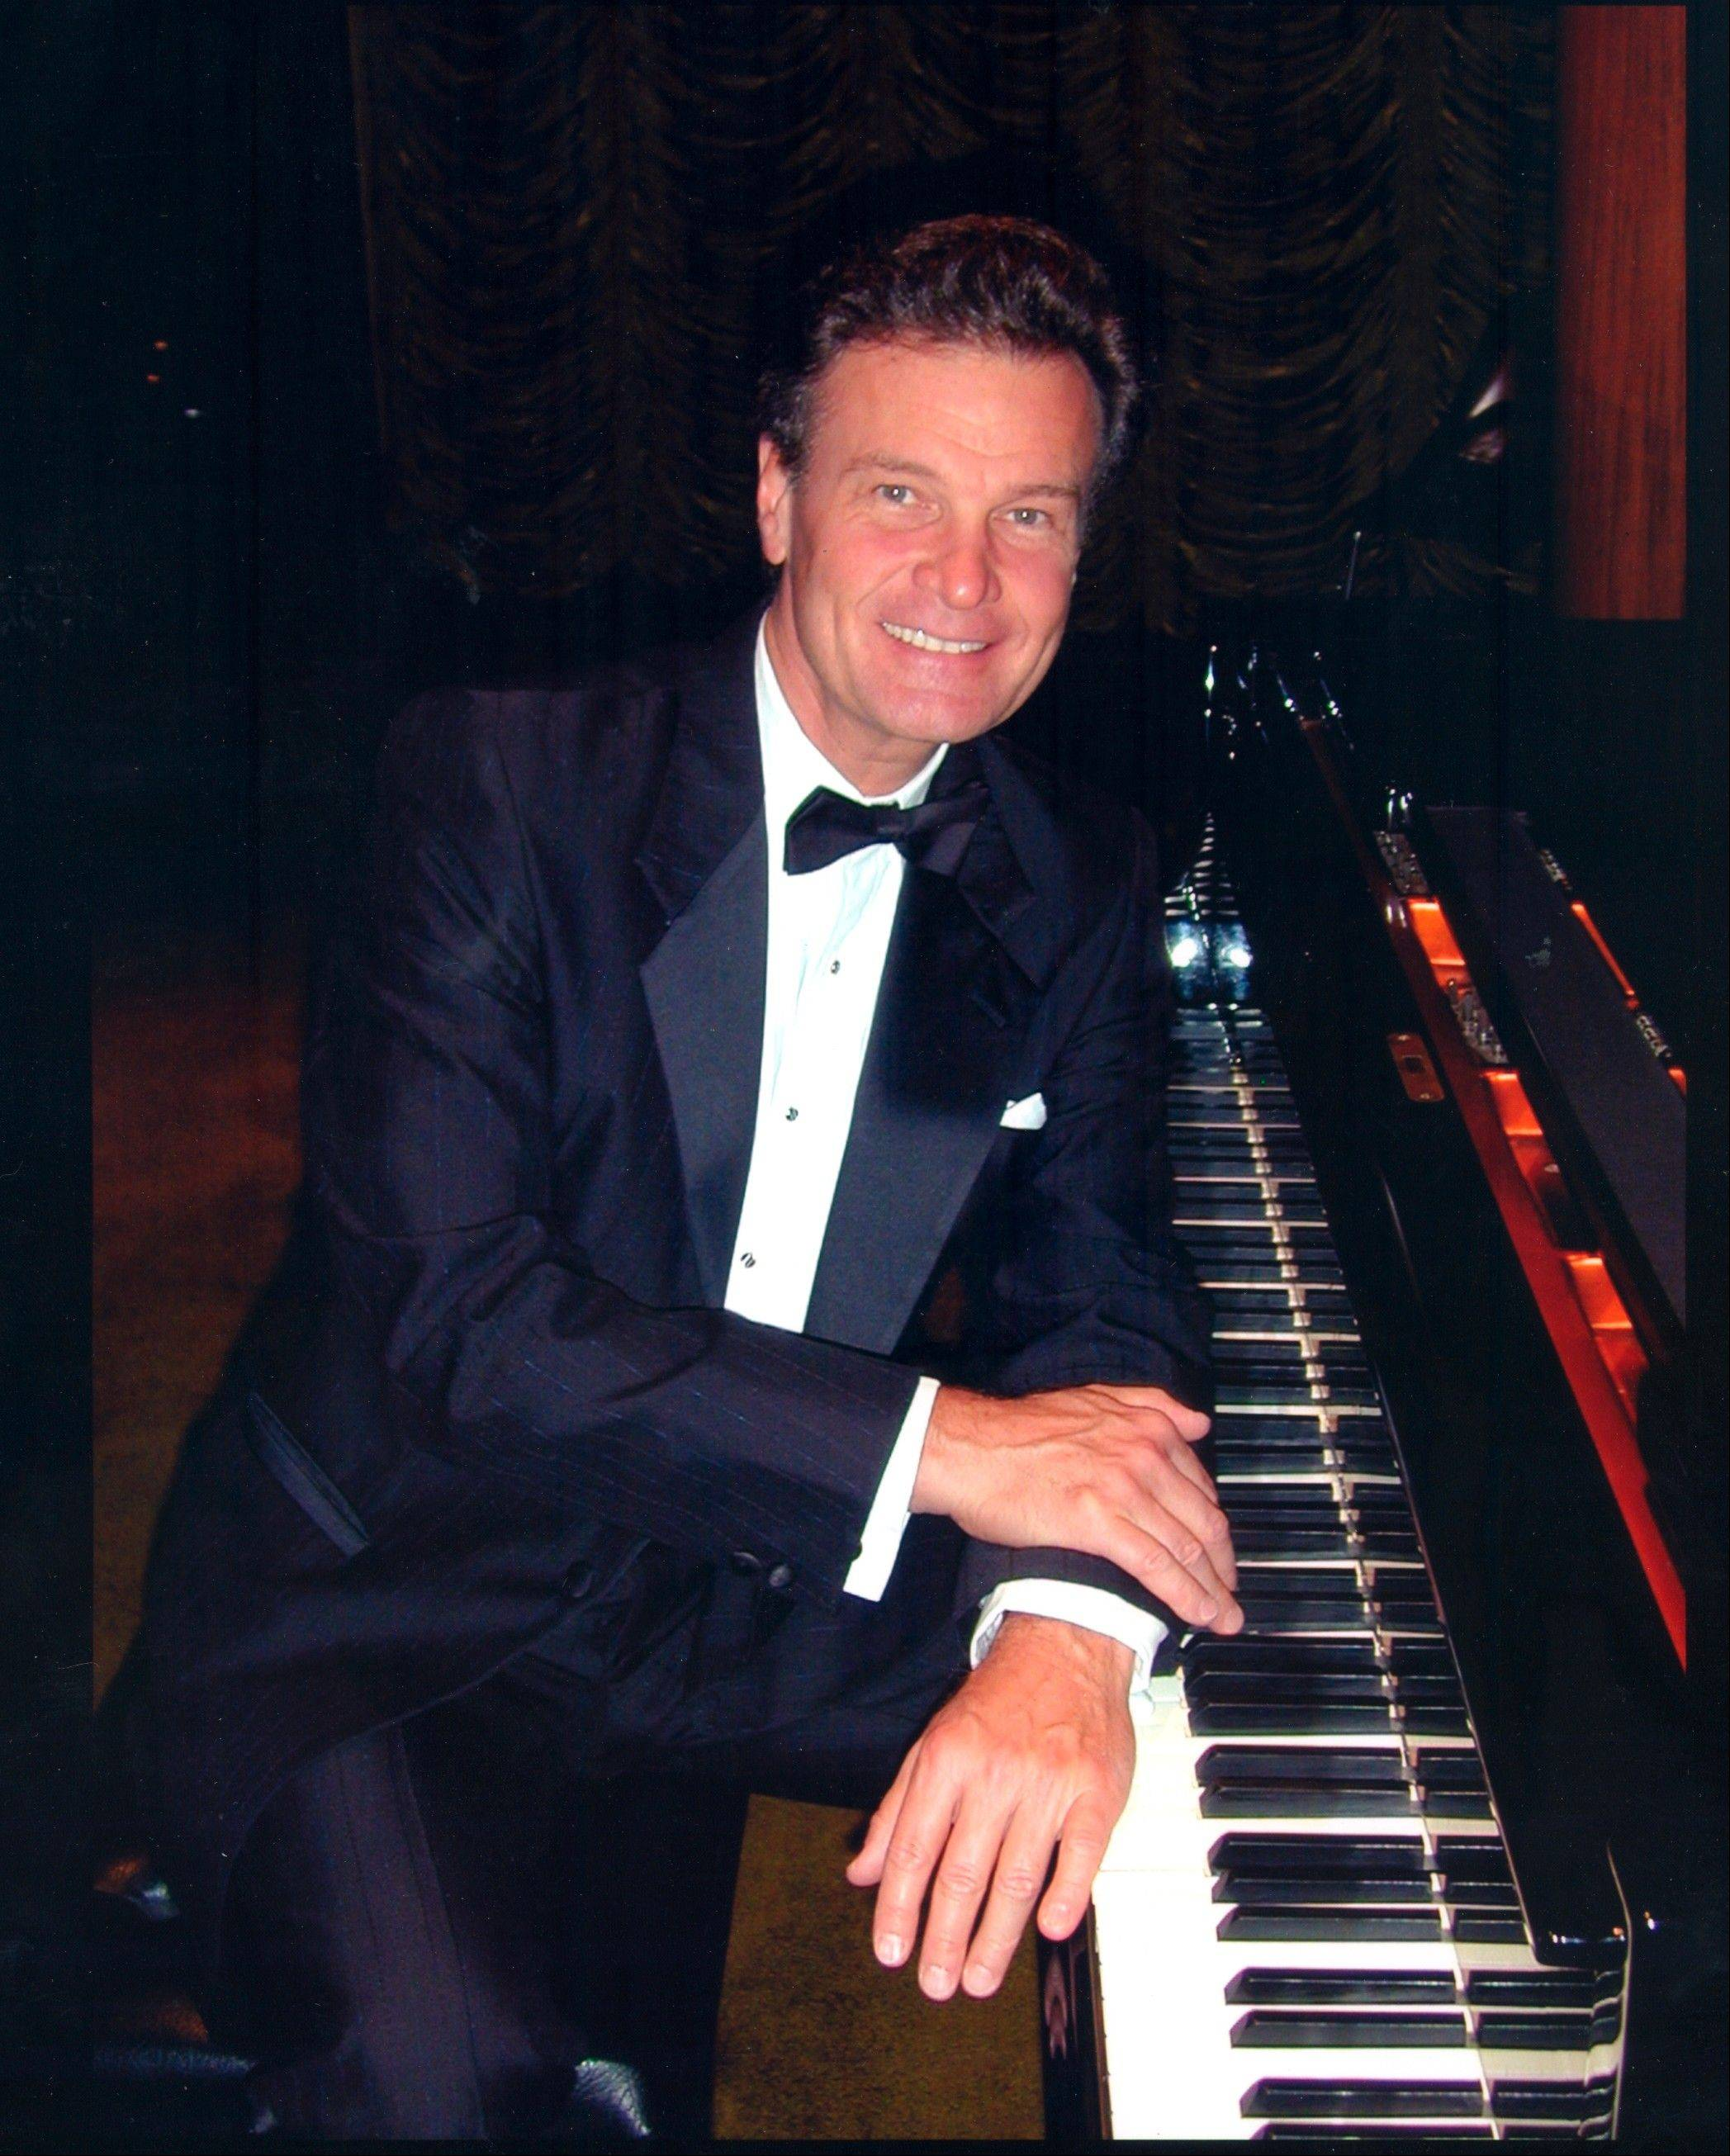 Classical pianist and Niles native Doug Montgomery will perform at 7 p.m. Saturday, Nov. 2, at Oakton's Footlik Theater.